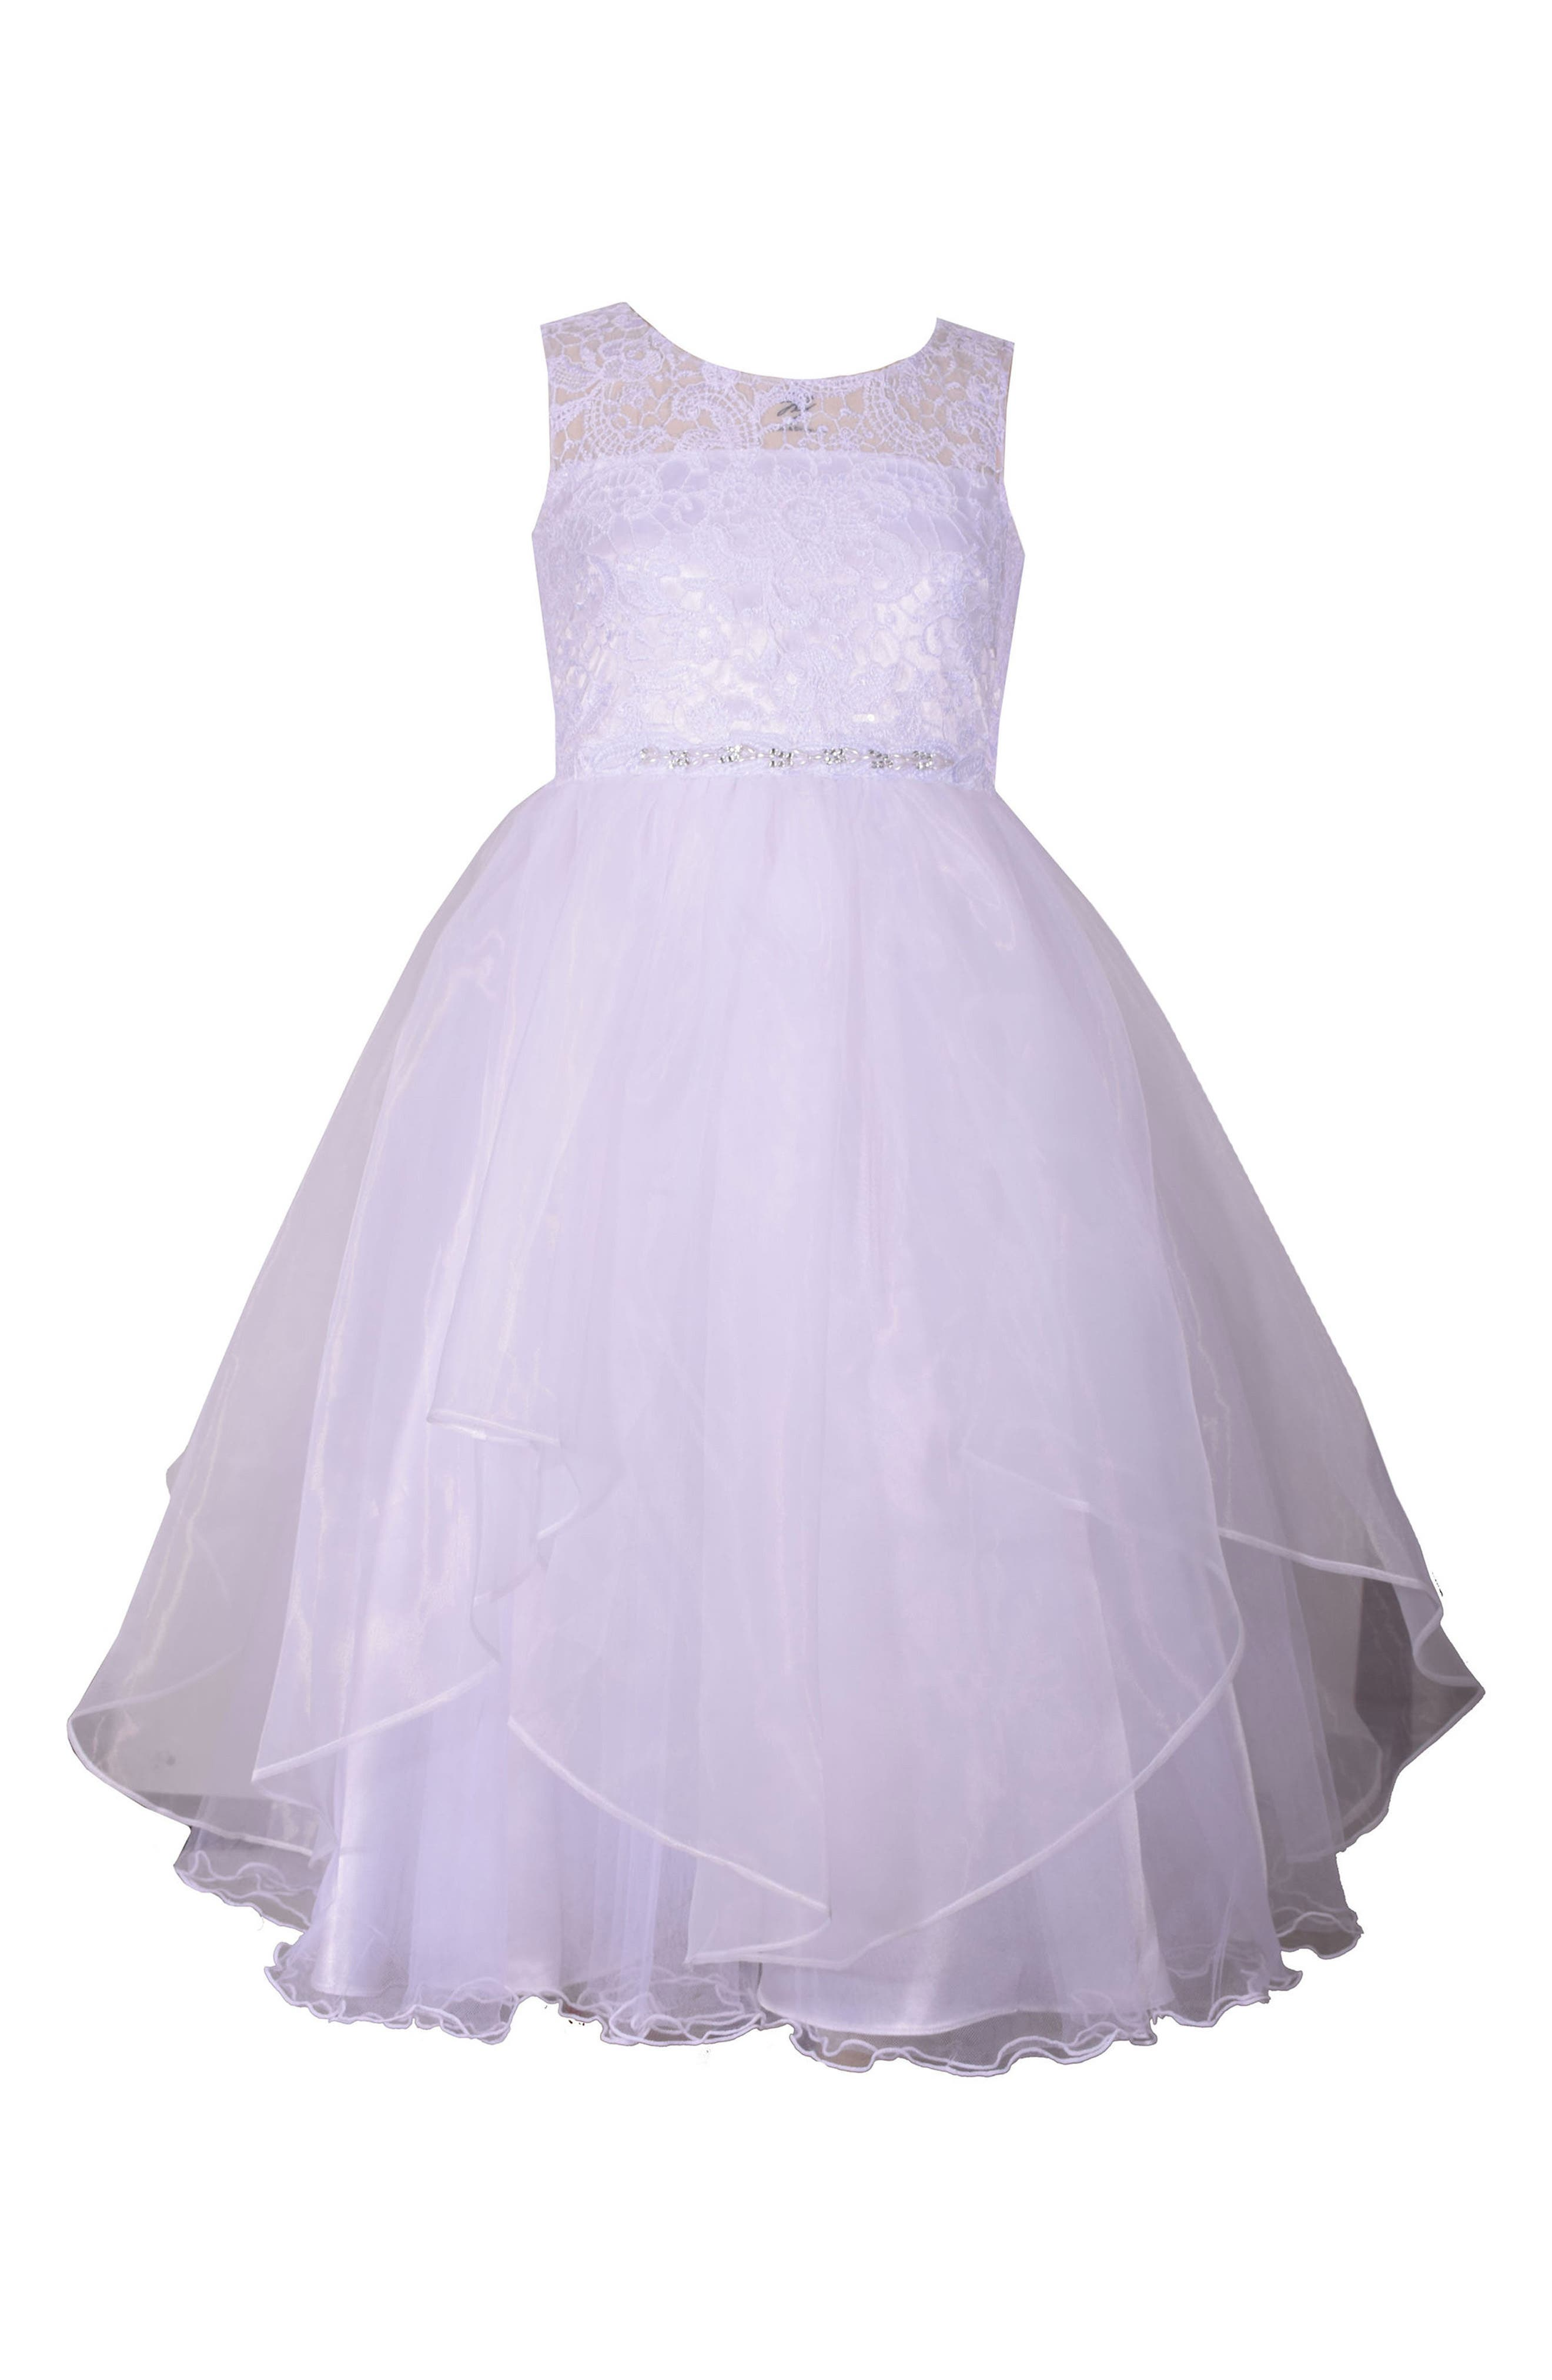 Iris & Ivy Lace Bodice First Communion Dress (Little Girls & Big Girls)